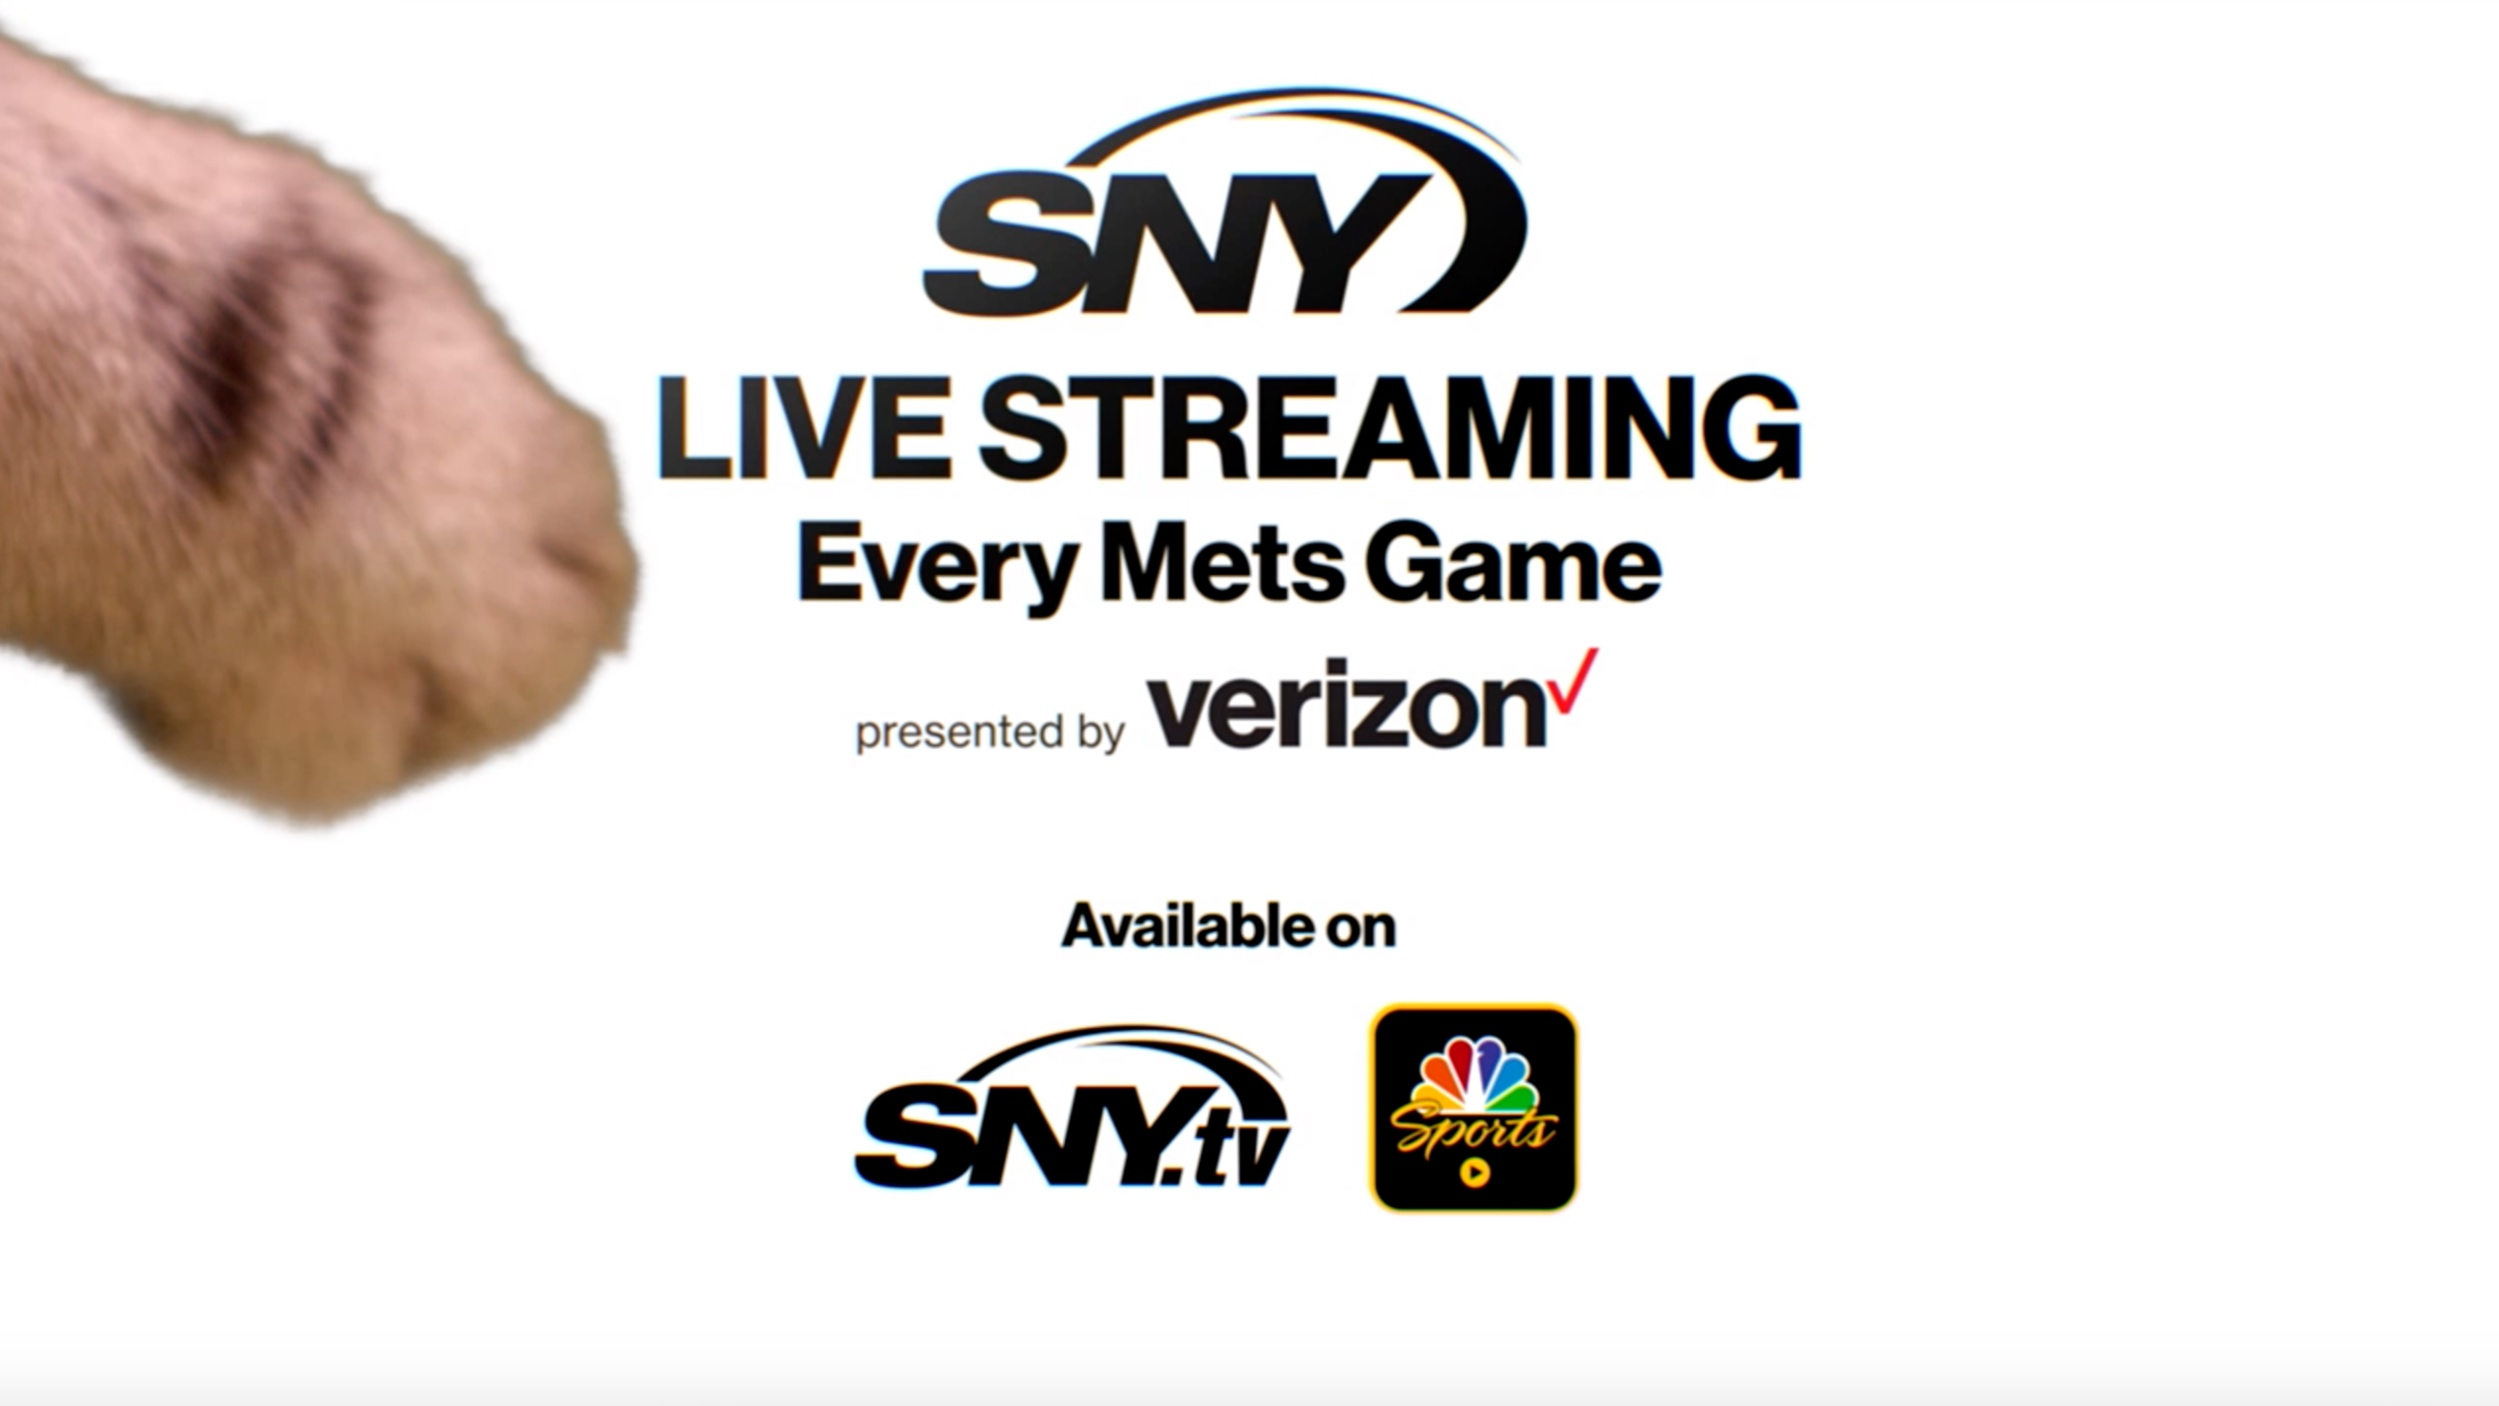 SNY Streaming/verizon - COMMERCIAL